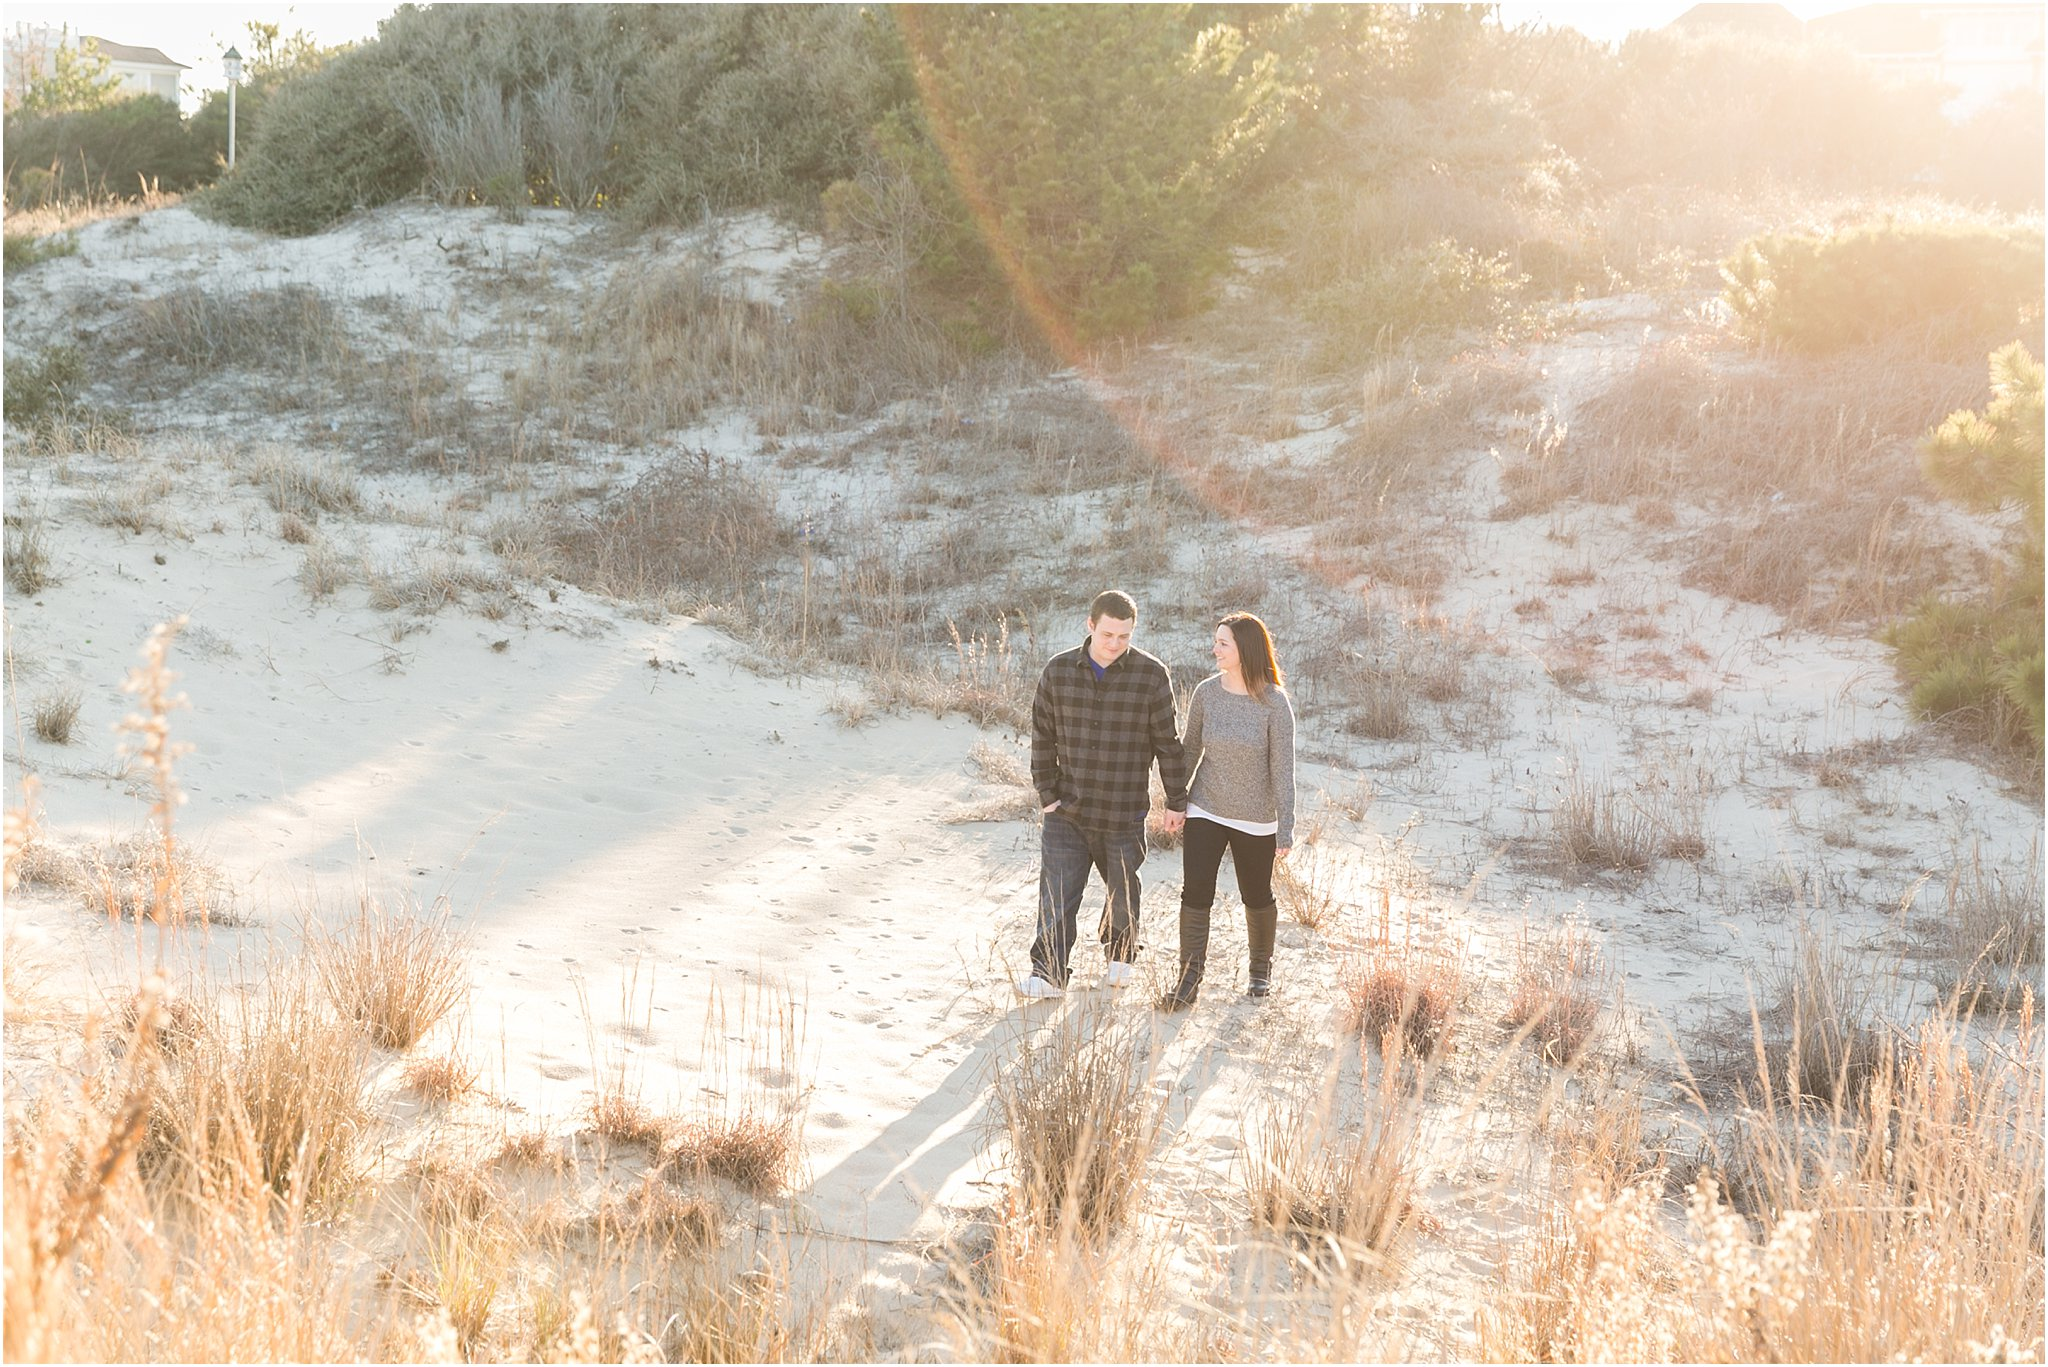 jessica_ryan_photography_winter_engagements_virginia_beach_oceanfront_virginia_0754